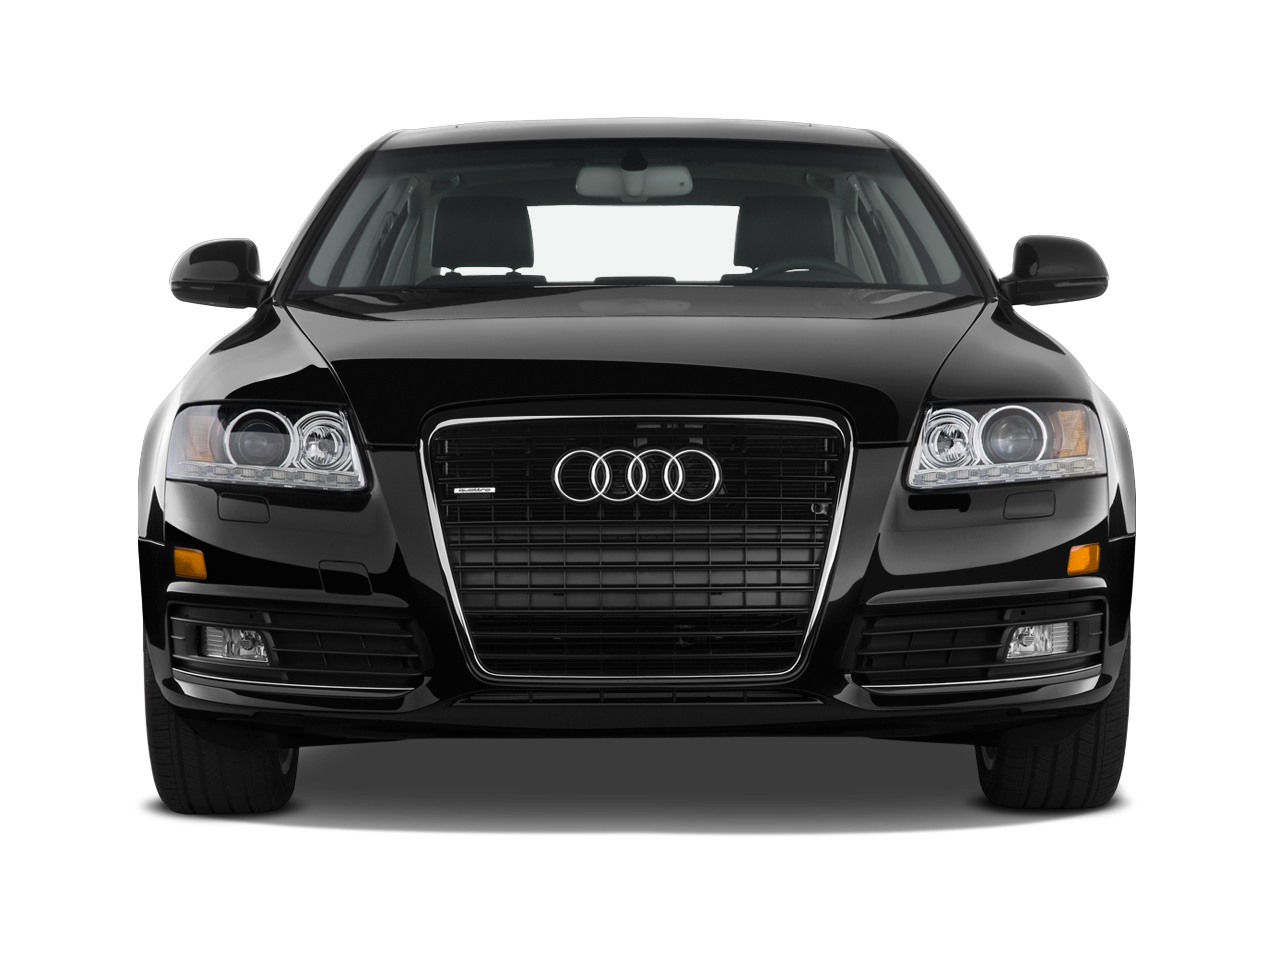 2009 audi a6 and s6 new audi a6 s6 rs6 luxury sedan. Black Bedroom Furniture Sets. Home Design Ideas